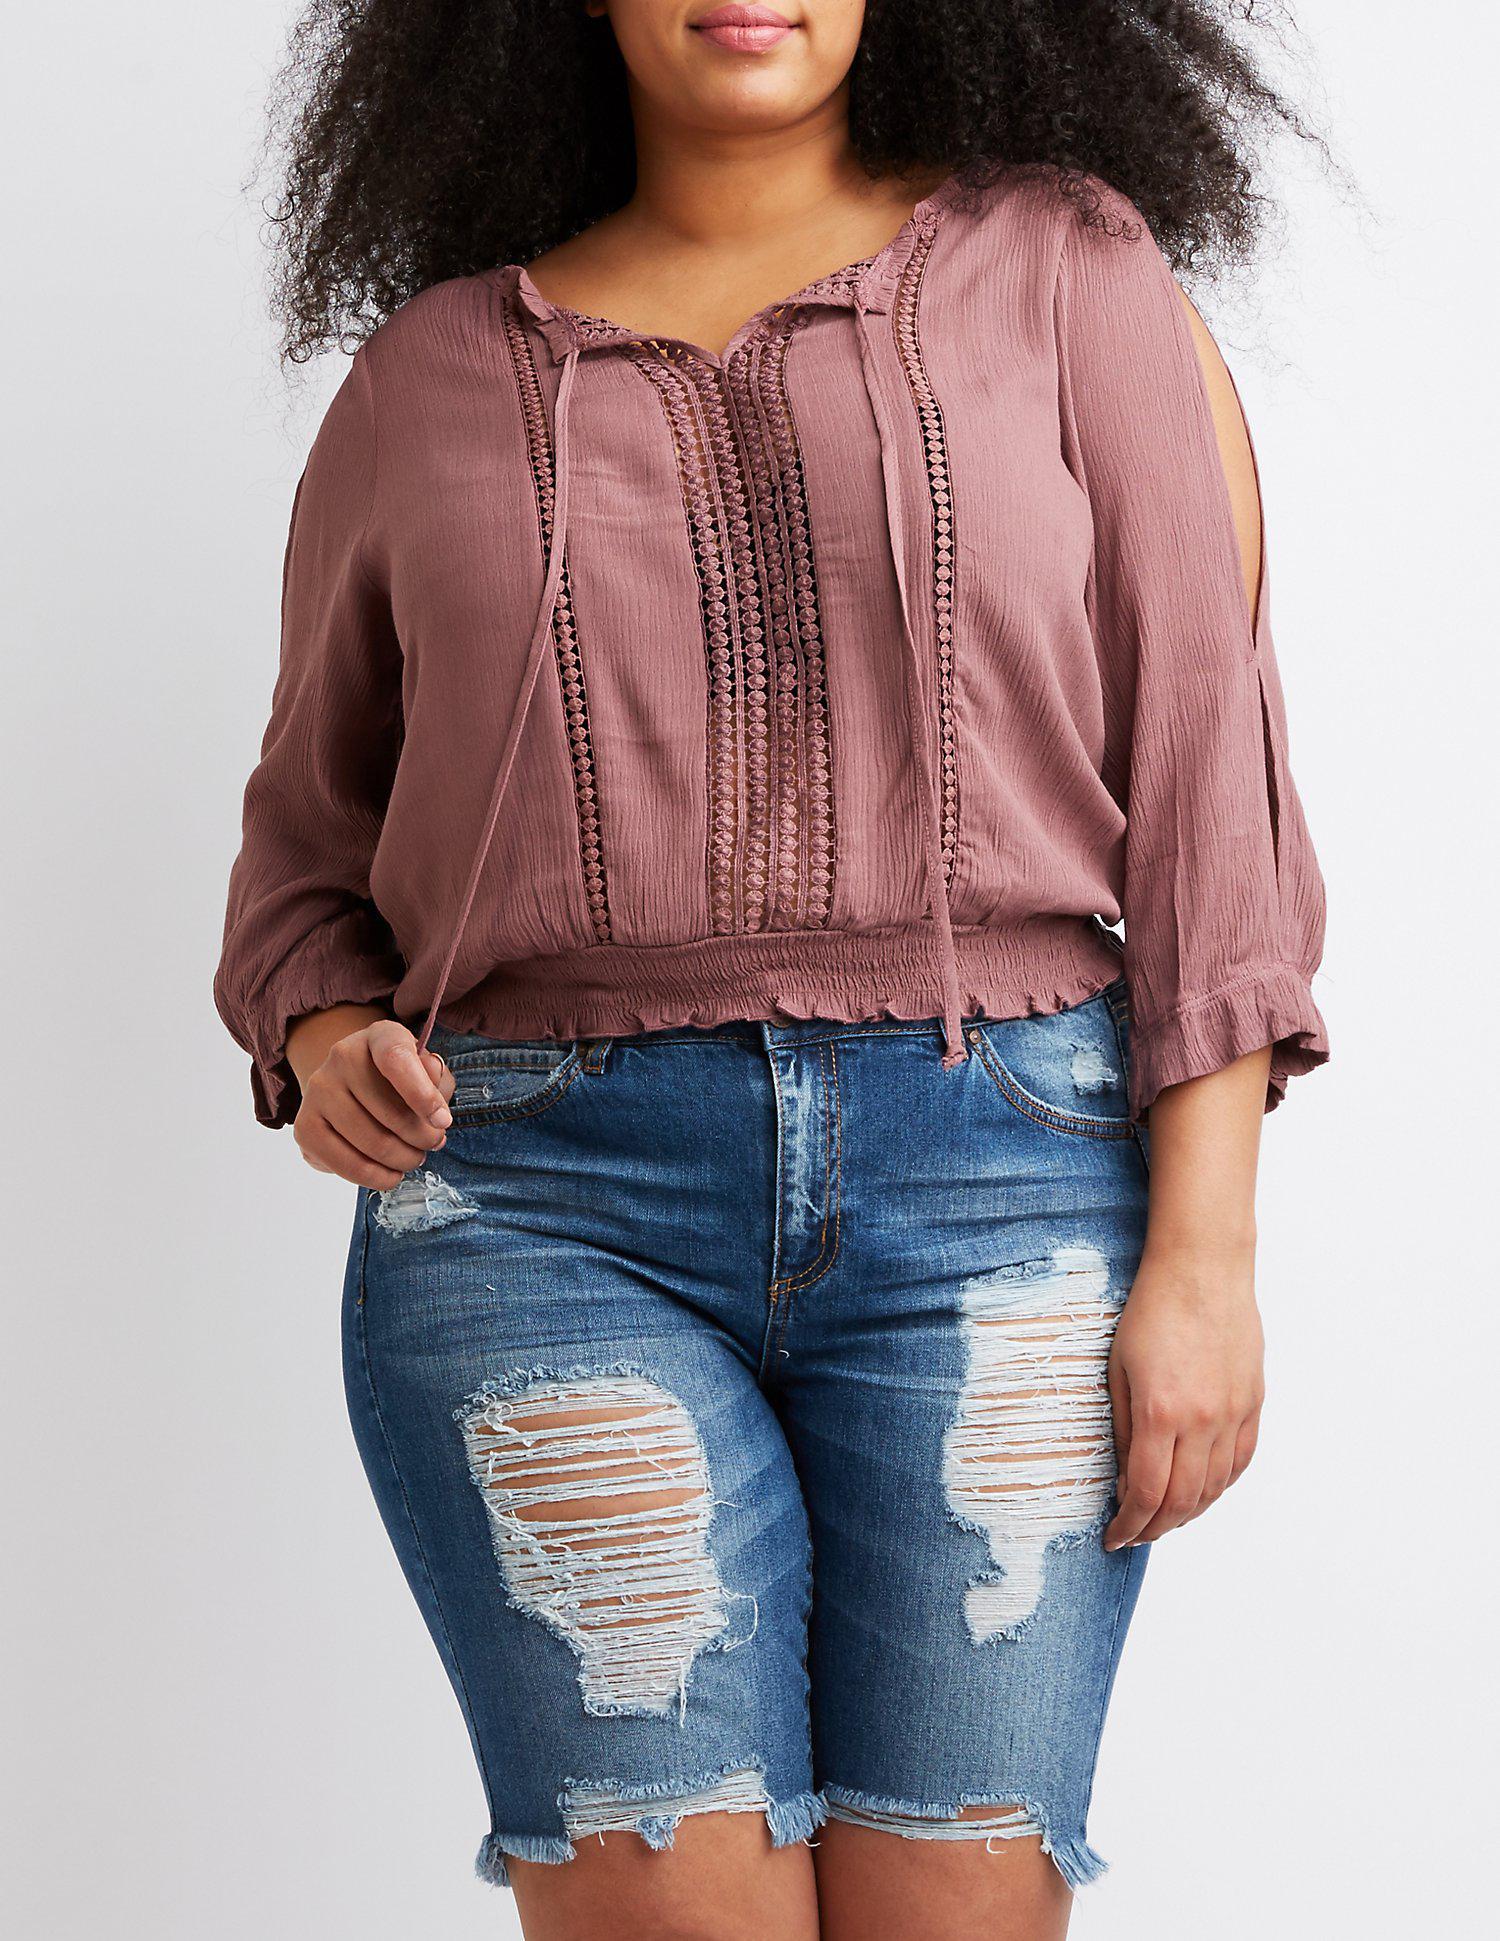 f2452caf24a6dd Lyst - Charlotte Russe Plus Size Cold Shoulder Top in Purple - Save 22%